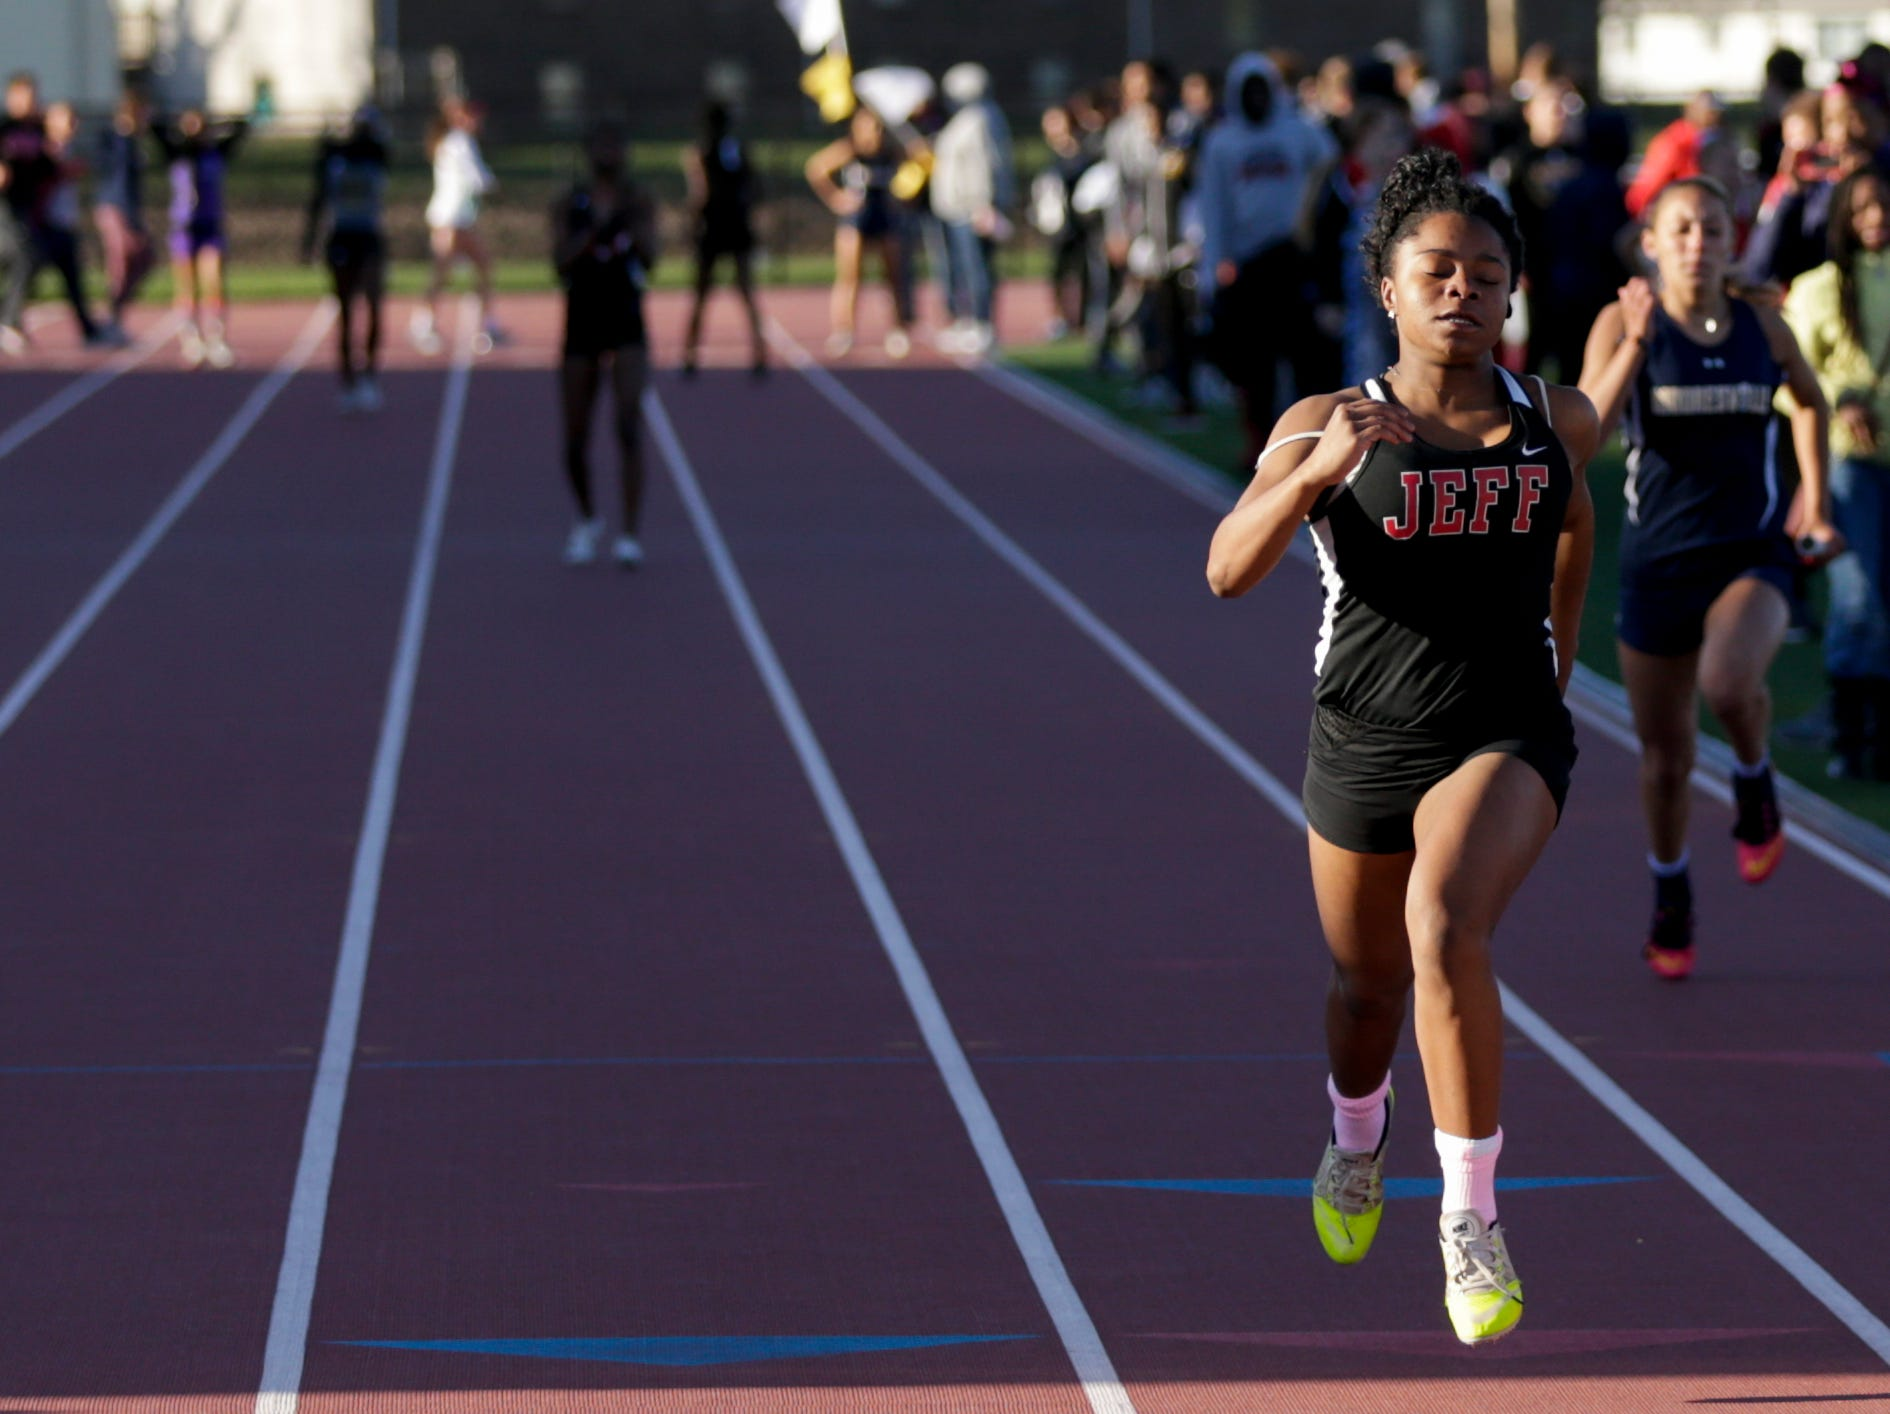 Lafayette Jeff relay runner competes in the women's 4x100 meter relay during the 2019 Sprinters Showcase, Friday, April 12, 2019, at Lafayette Jeff High School in Lafayette.